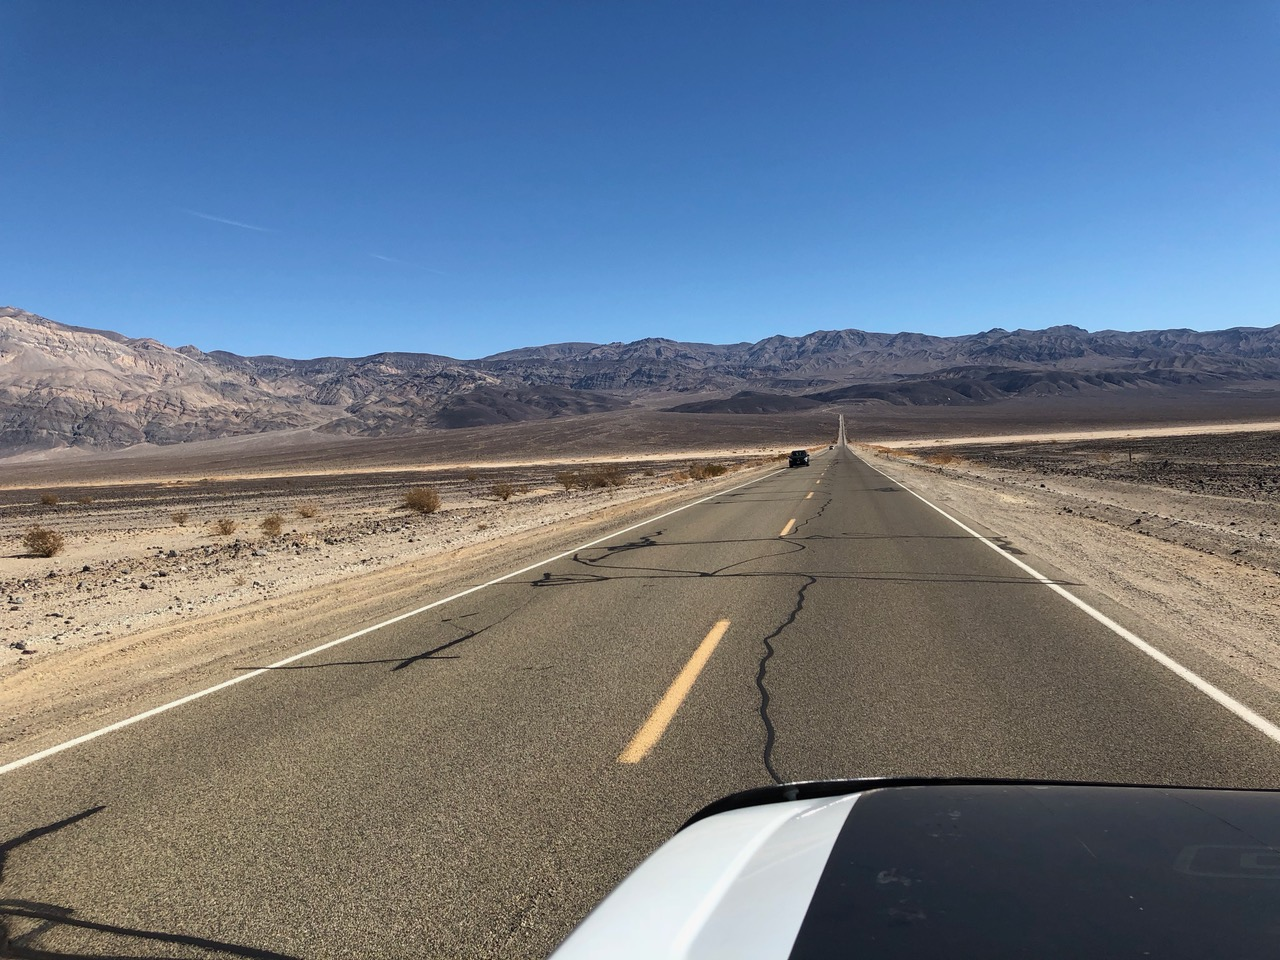 ...driving through Death Valley